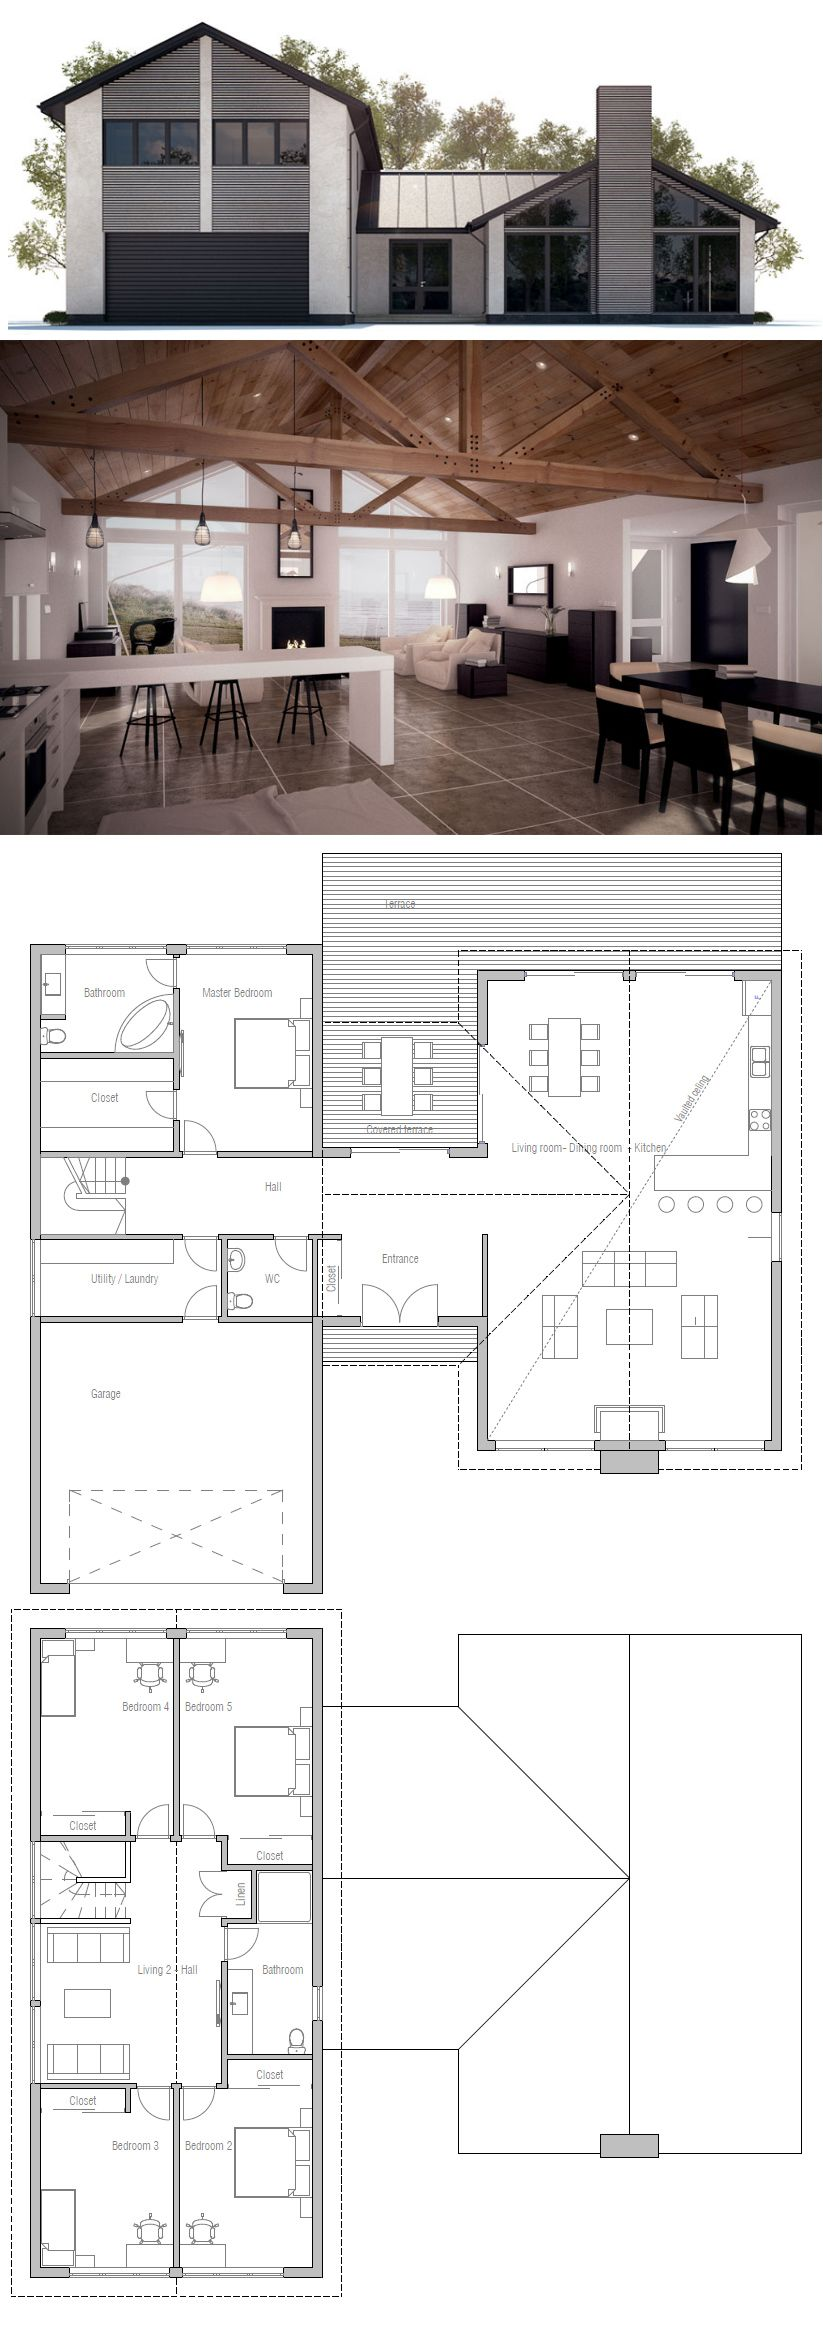 ^ 1000+ images about Grundrisse on Pinterest House, House plans ...